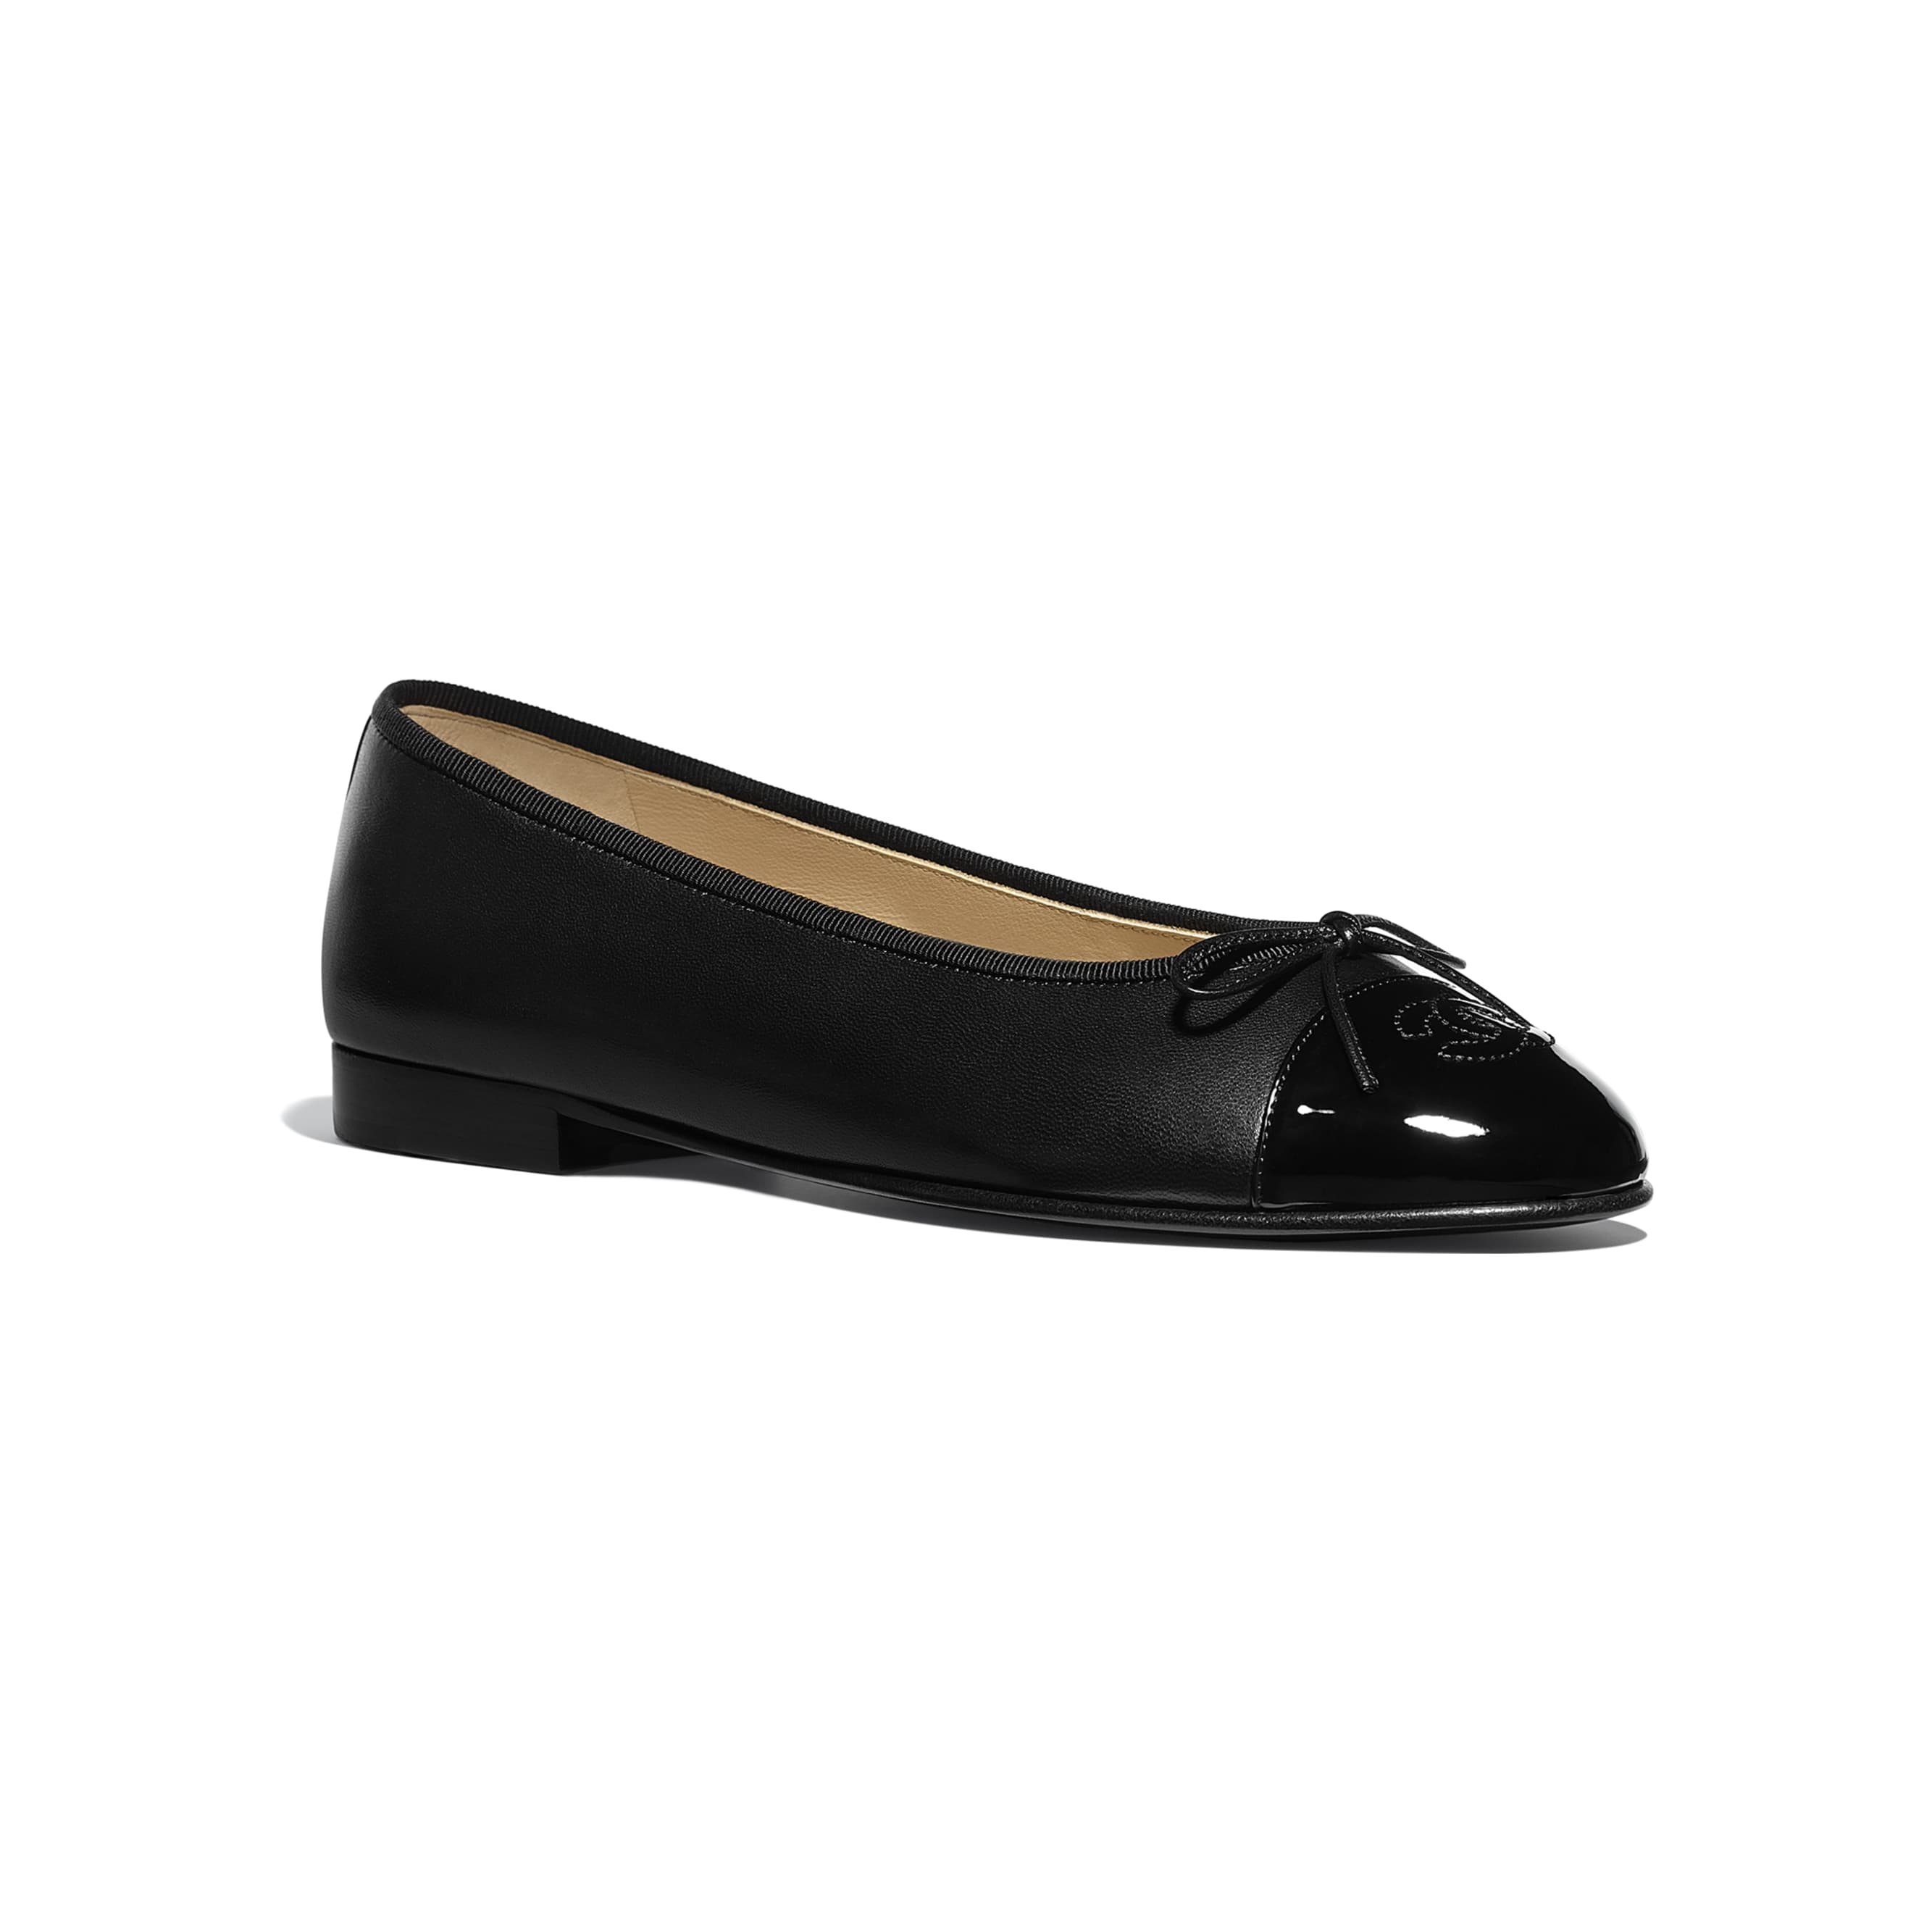 Flats - Black - Lambskin & Patent Calfskin - CHANEL - Alternative view - see standard sized version